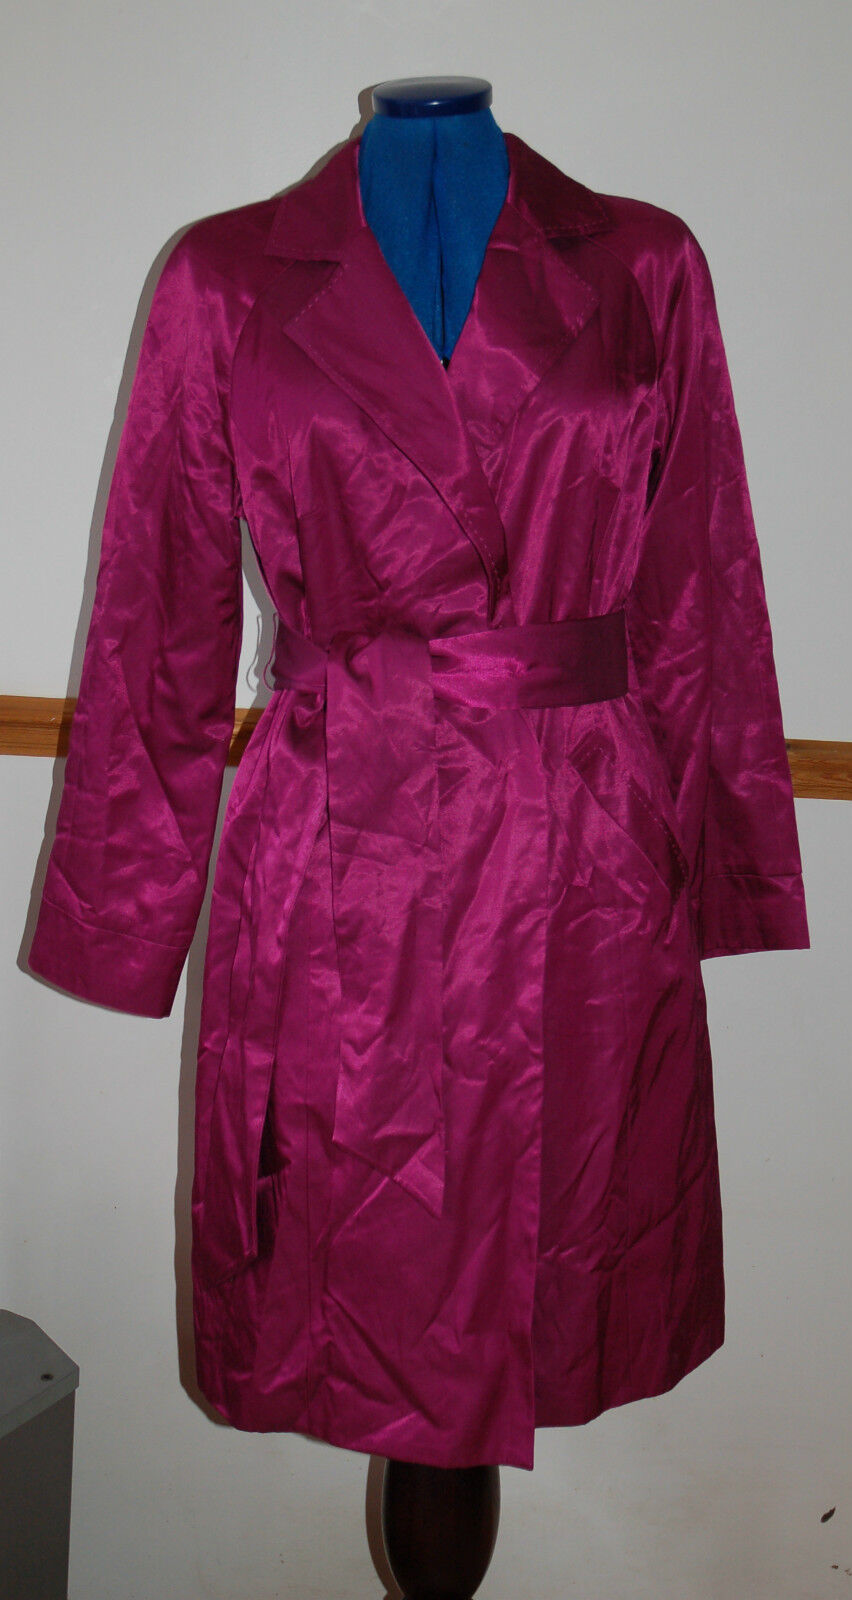 ️ New Sz 10-12 Boden Maroon pink Shiny Satin Trench Coat With belt Party Gift